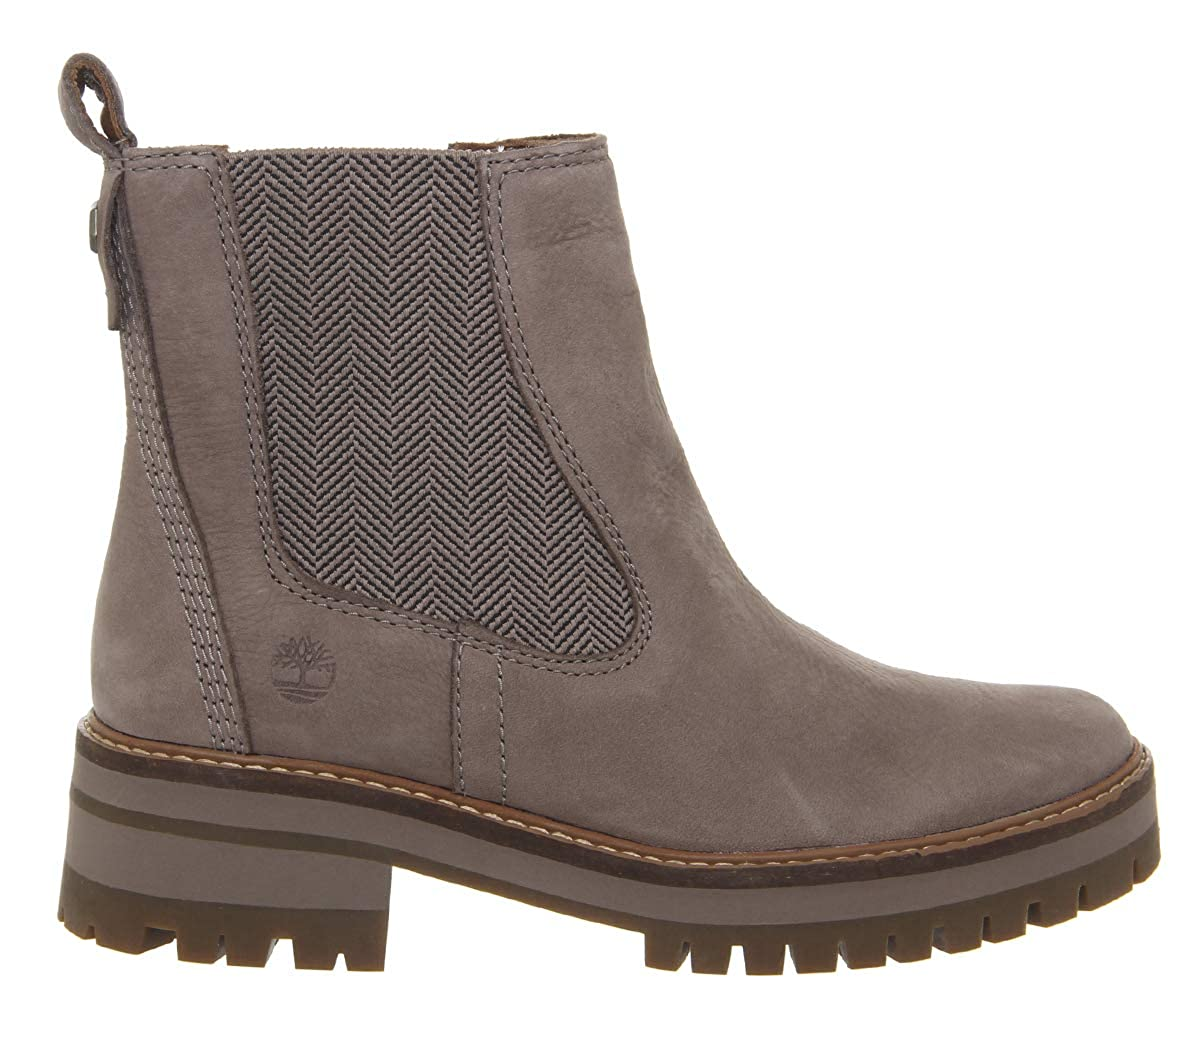 18274421f1 Amazon.com   Timberland Womens Courmayeur Valley CH Taupe Nubuck Leather  Ankle Boots Size   Shoes